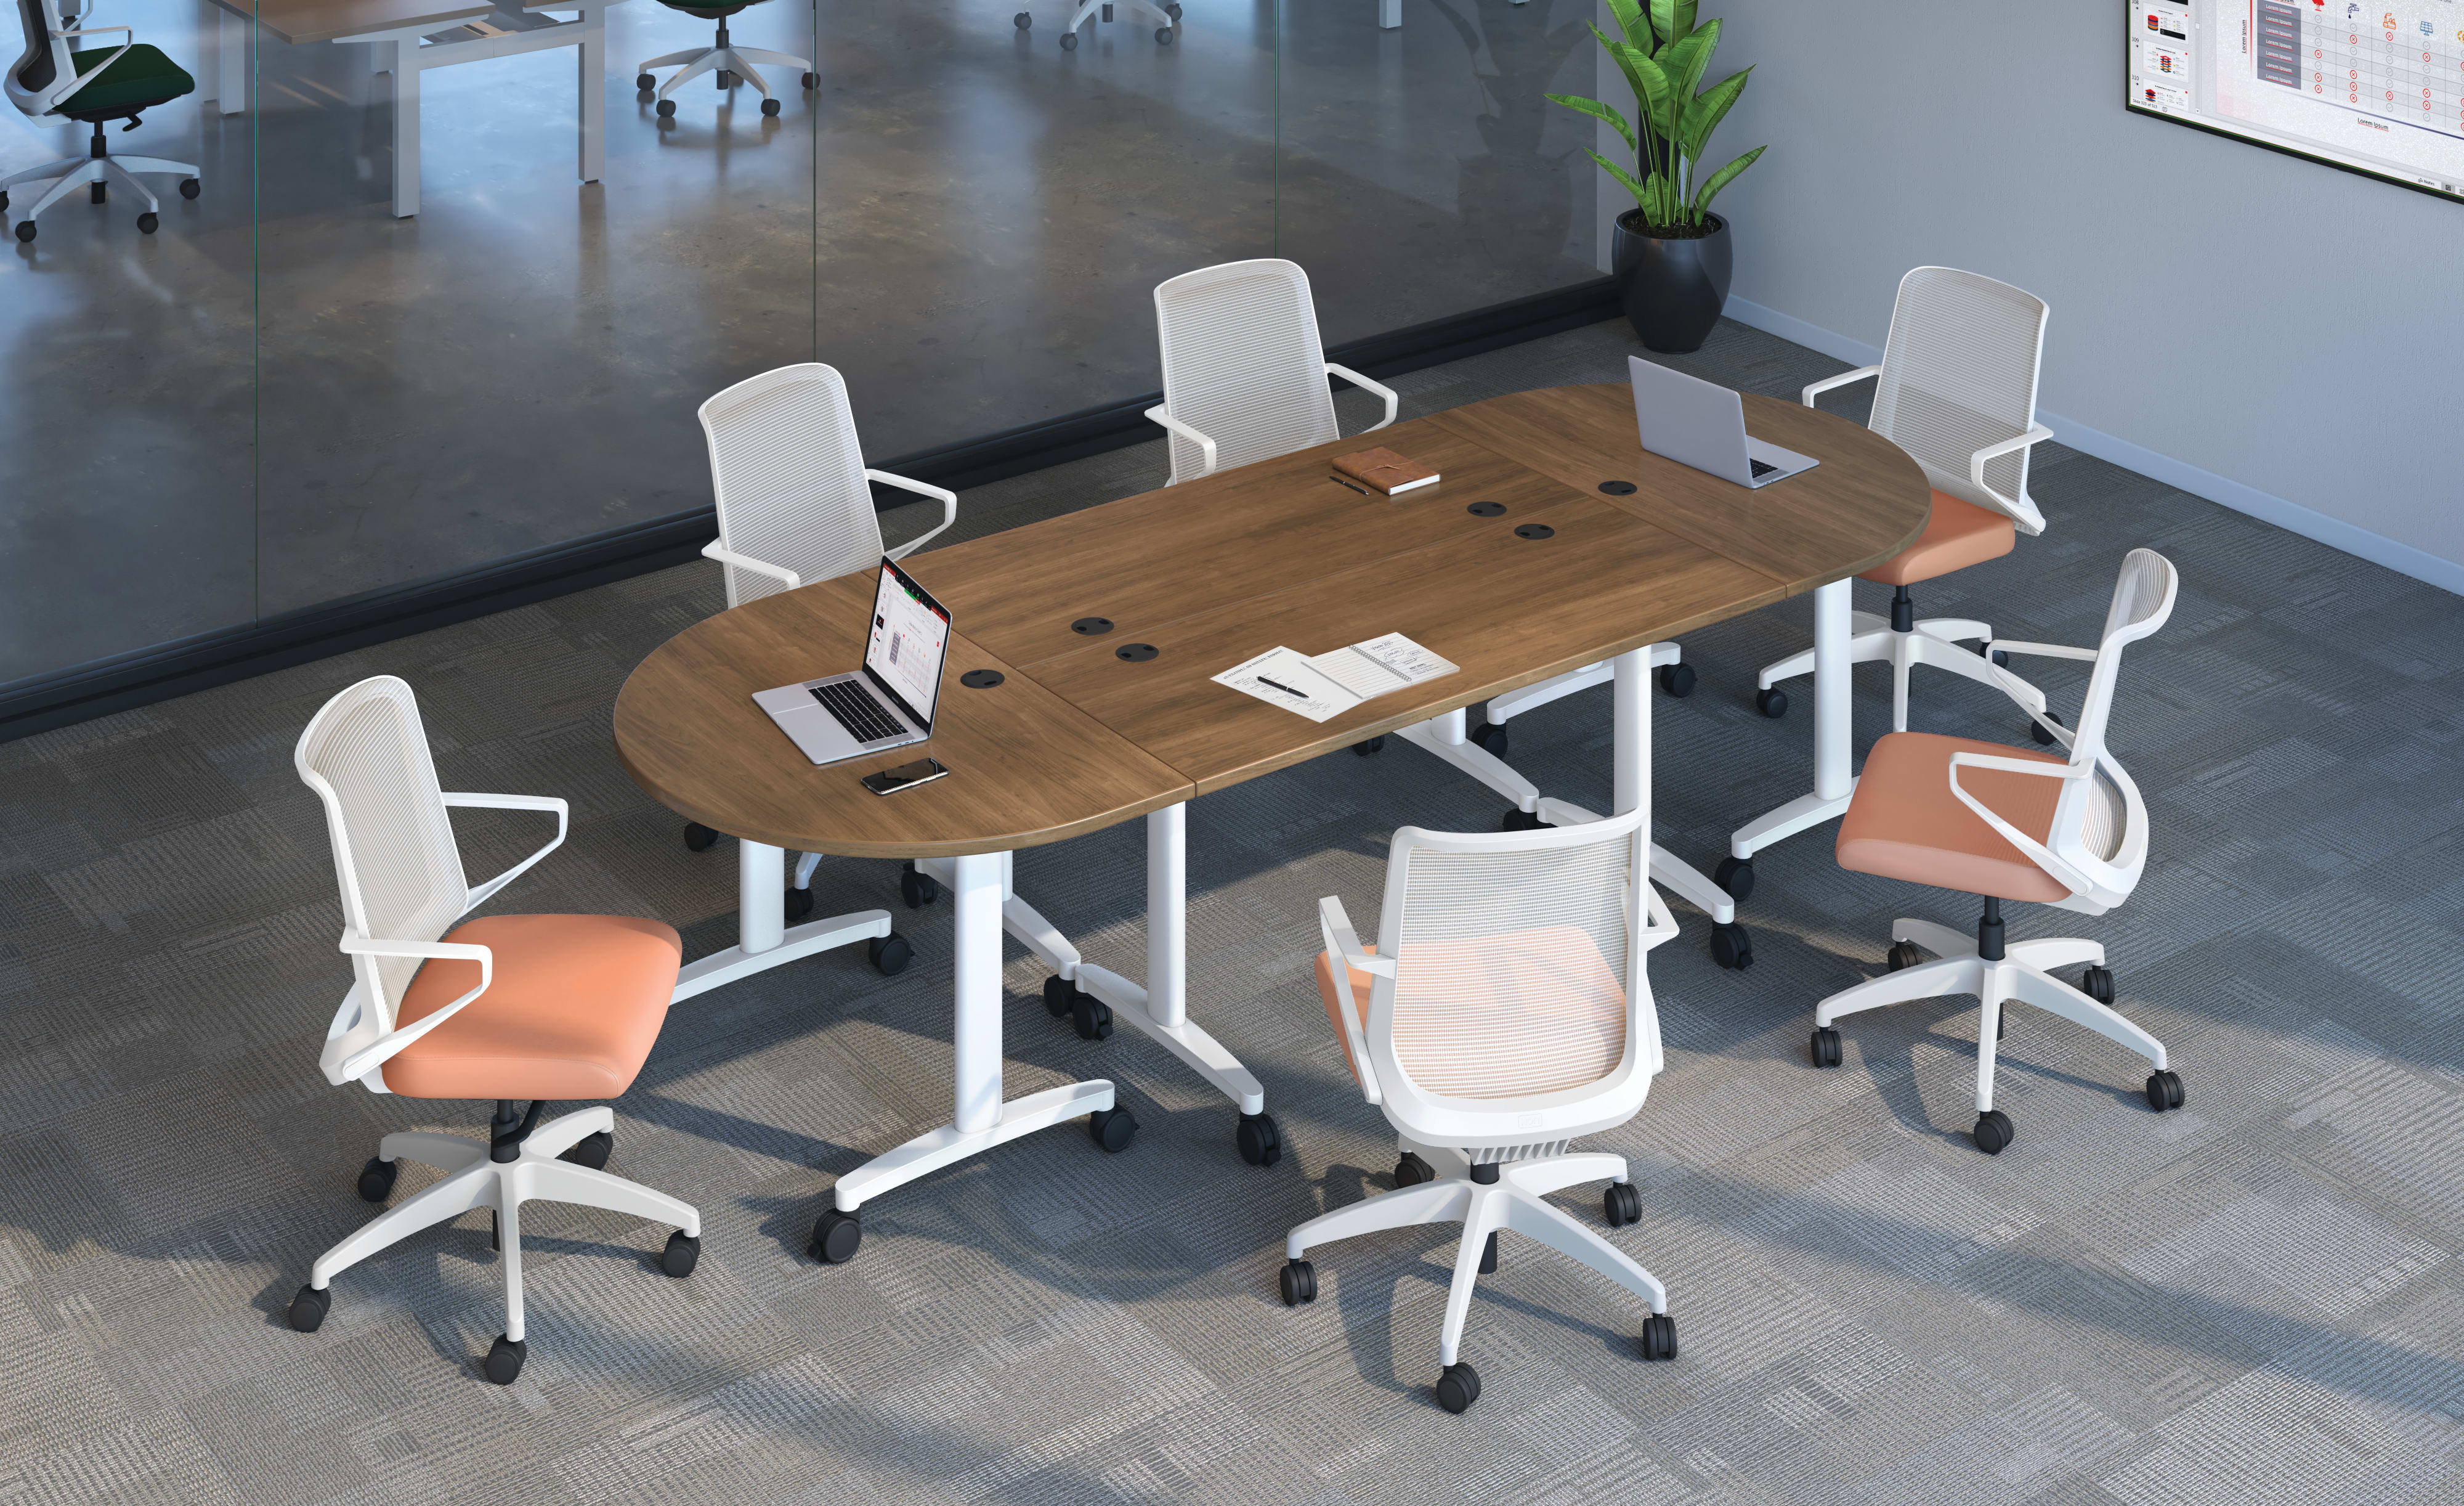 Huddle rectangle and half round tables  in Pinnacle tops with grommets and Designer White legs shown with Cliq task seating.